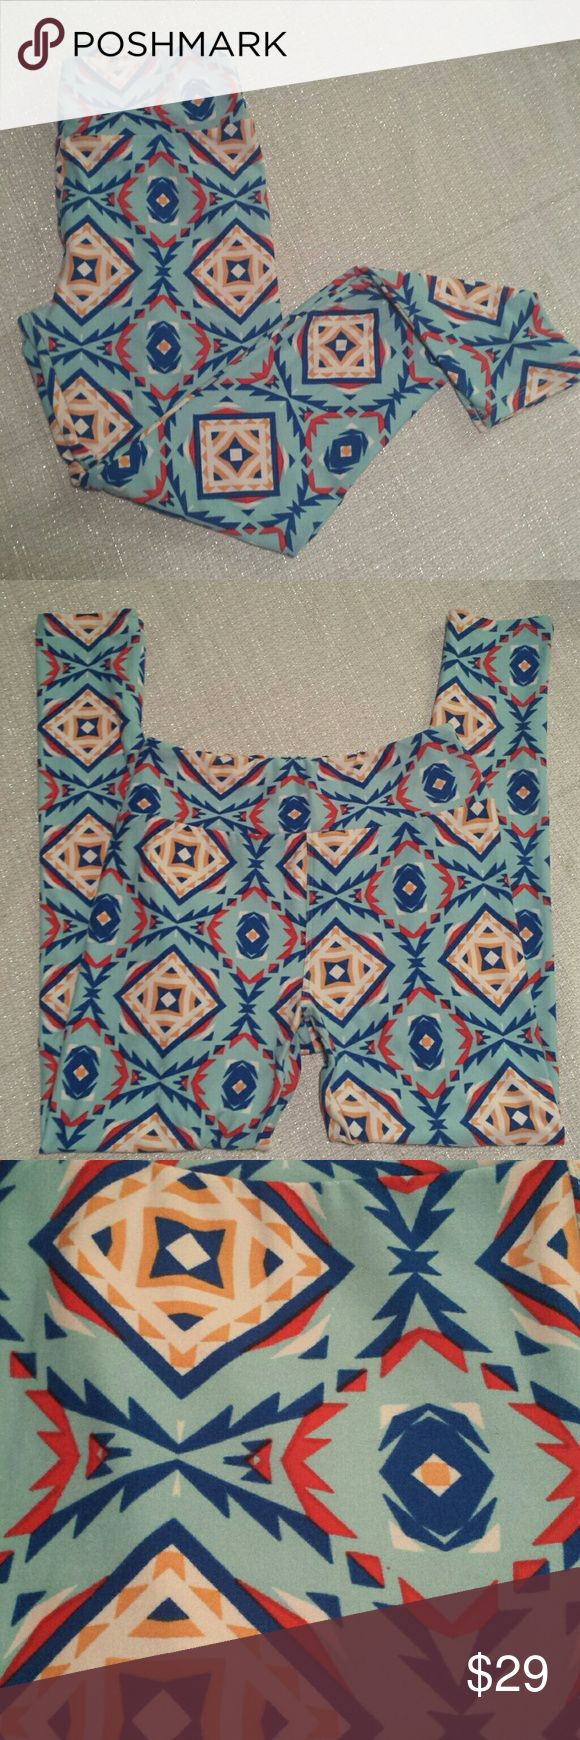 Lularoe Tribal Aztec Diamond Leggings OS Lularoe Tribal Aztec Diamond leggings. Robins egg blue background with Aztec tribal and diamond pattern in shades of red, royal blue, goldenrod and white. Great condition with no rips, holes, tears or stains. Bright pattern. No fading. One size. LuLaRoe Pants Leggings